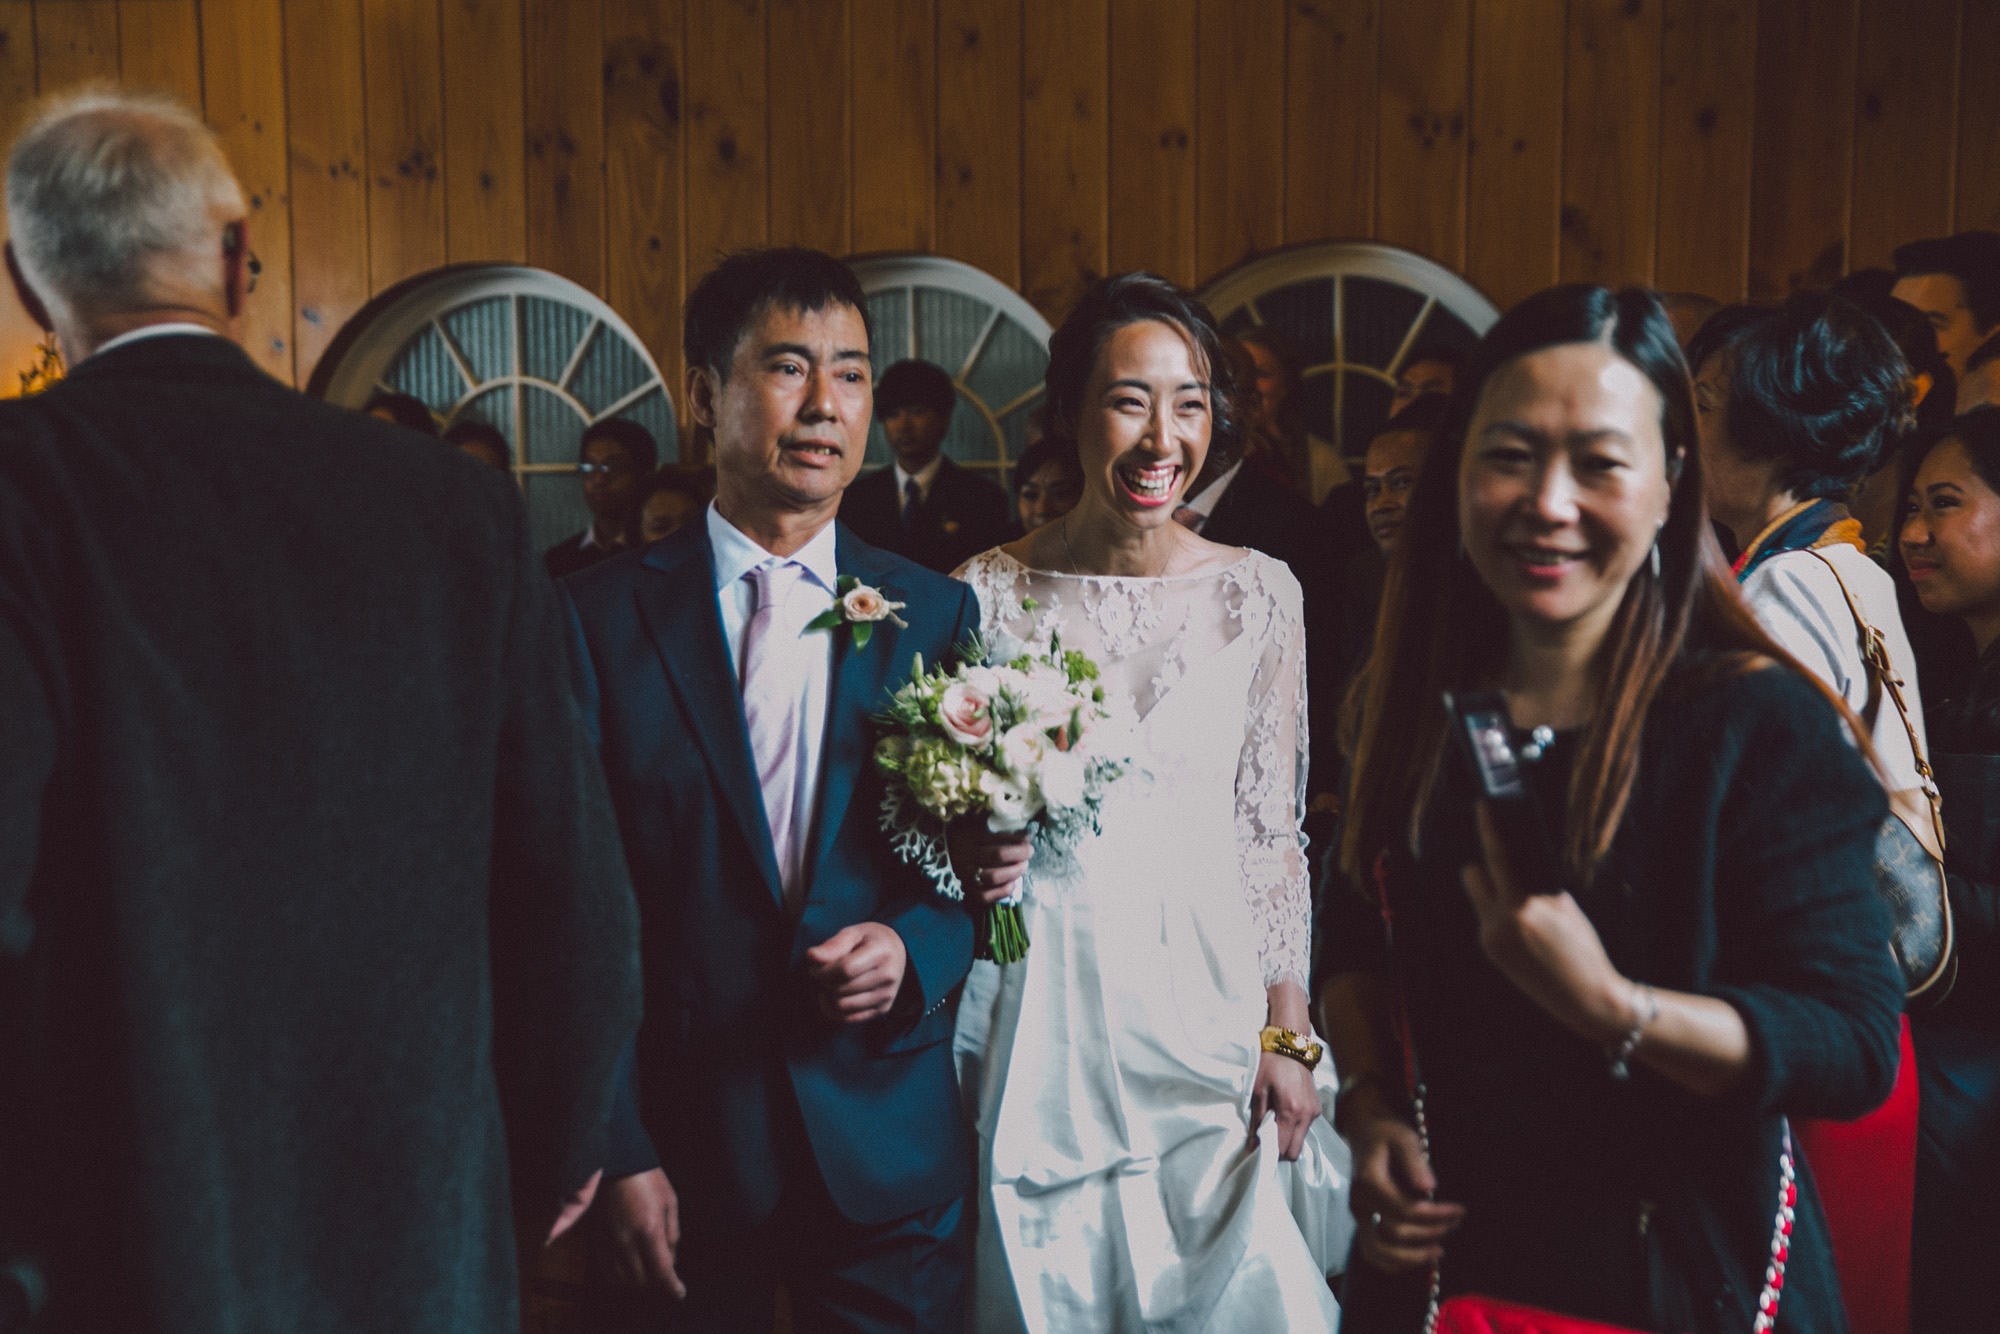 Sarah_McEvoy_Wellington_Wedding_Photographer_049.jpg